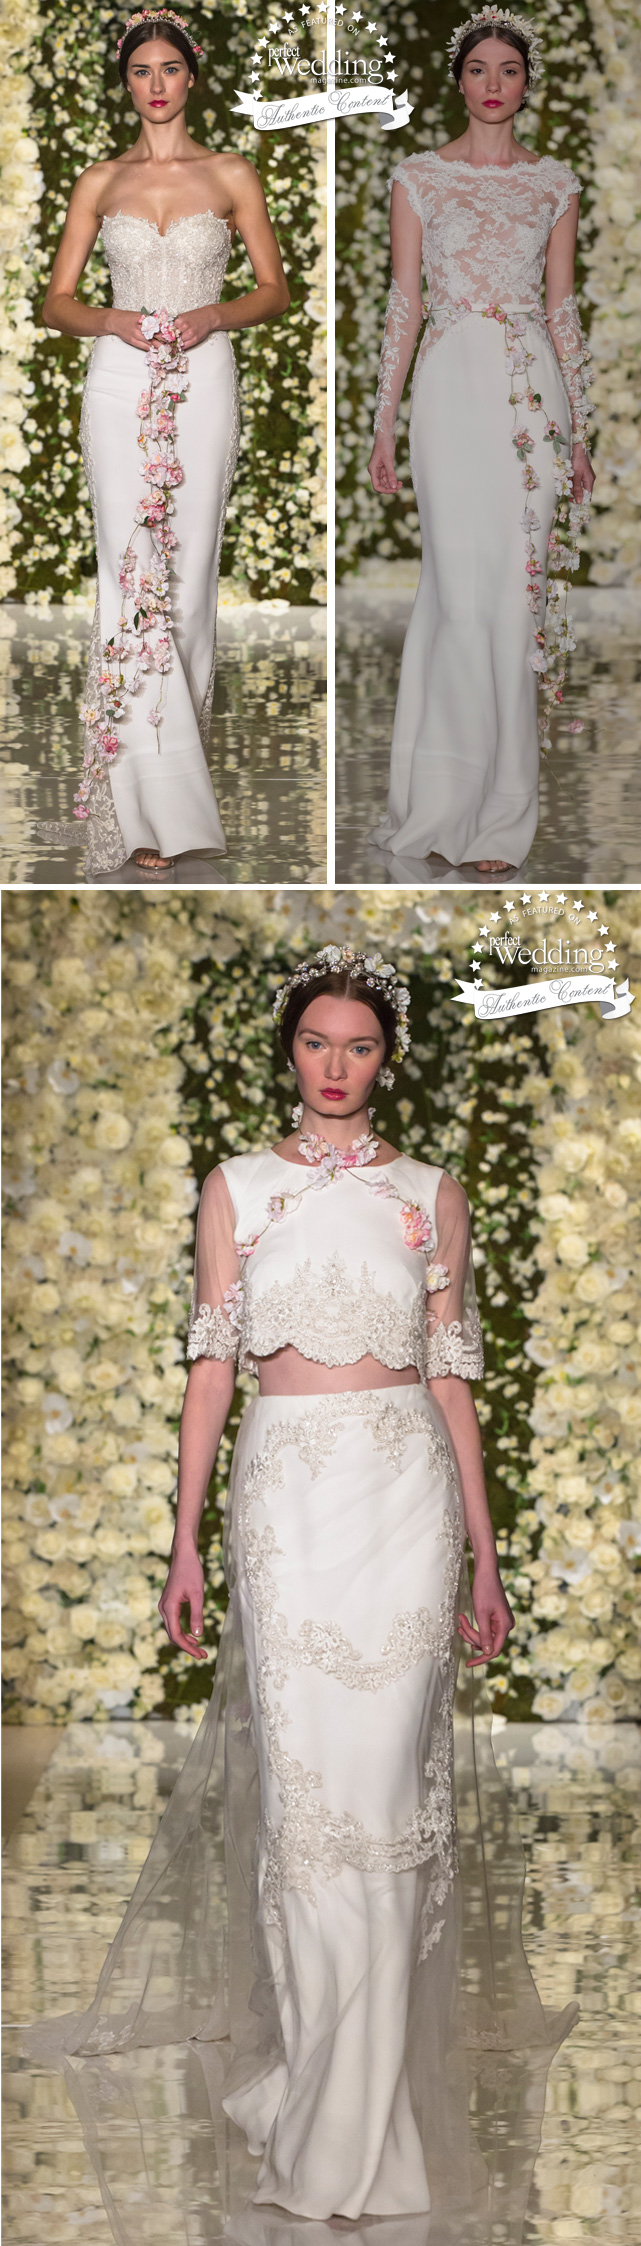 Reem Acra, Bridal, Fall 2015, NY Bridal Week, Perfect Wedding Magazine